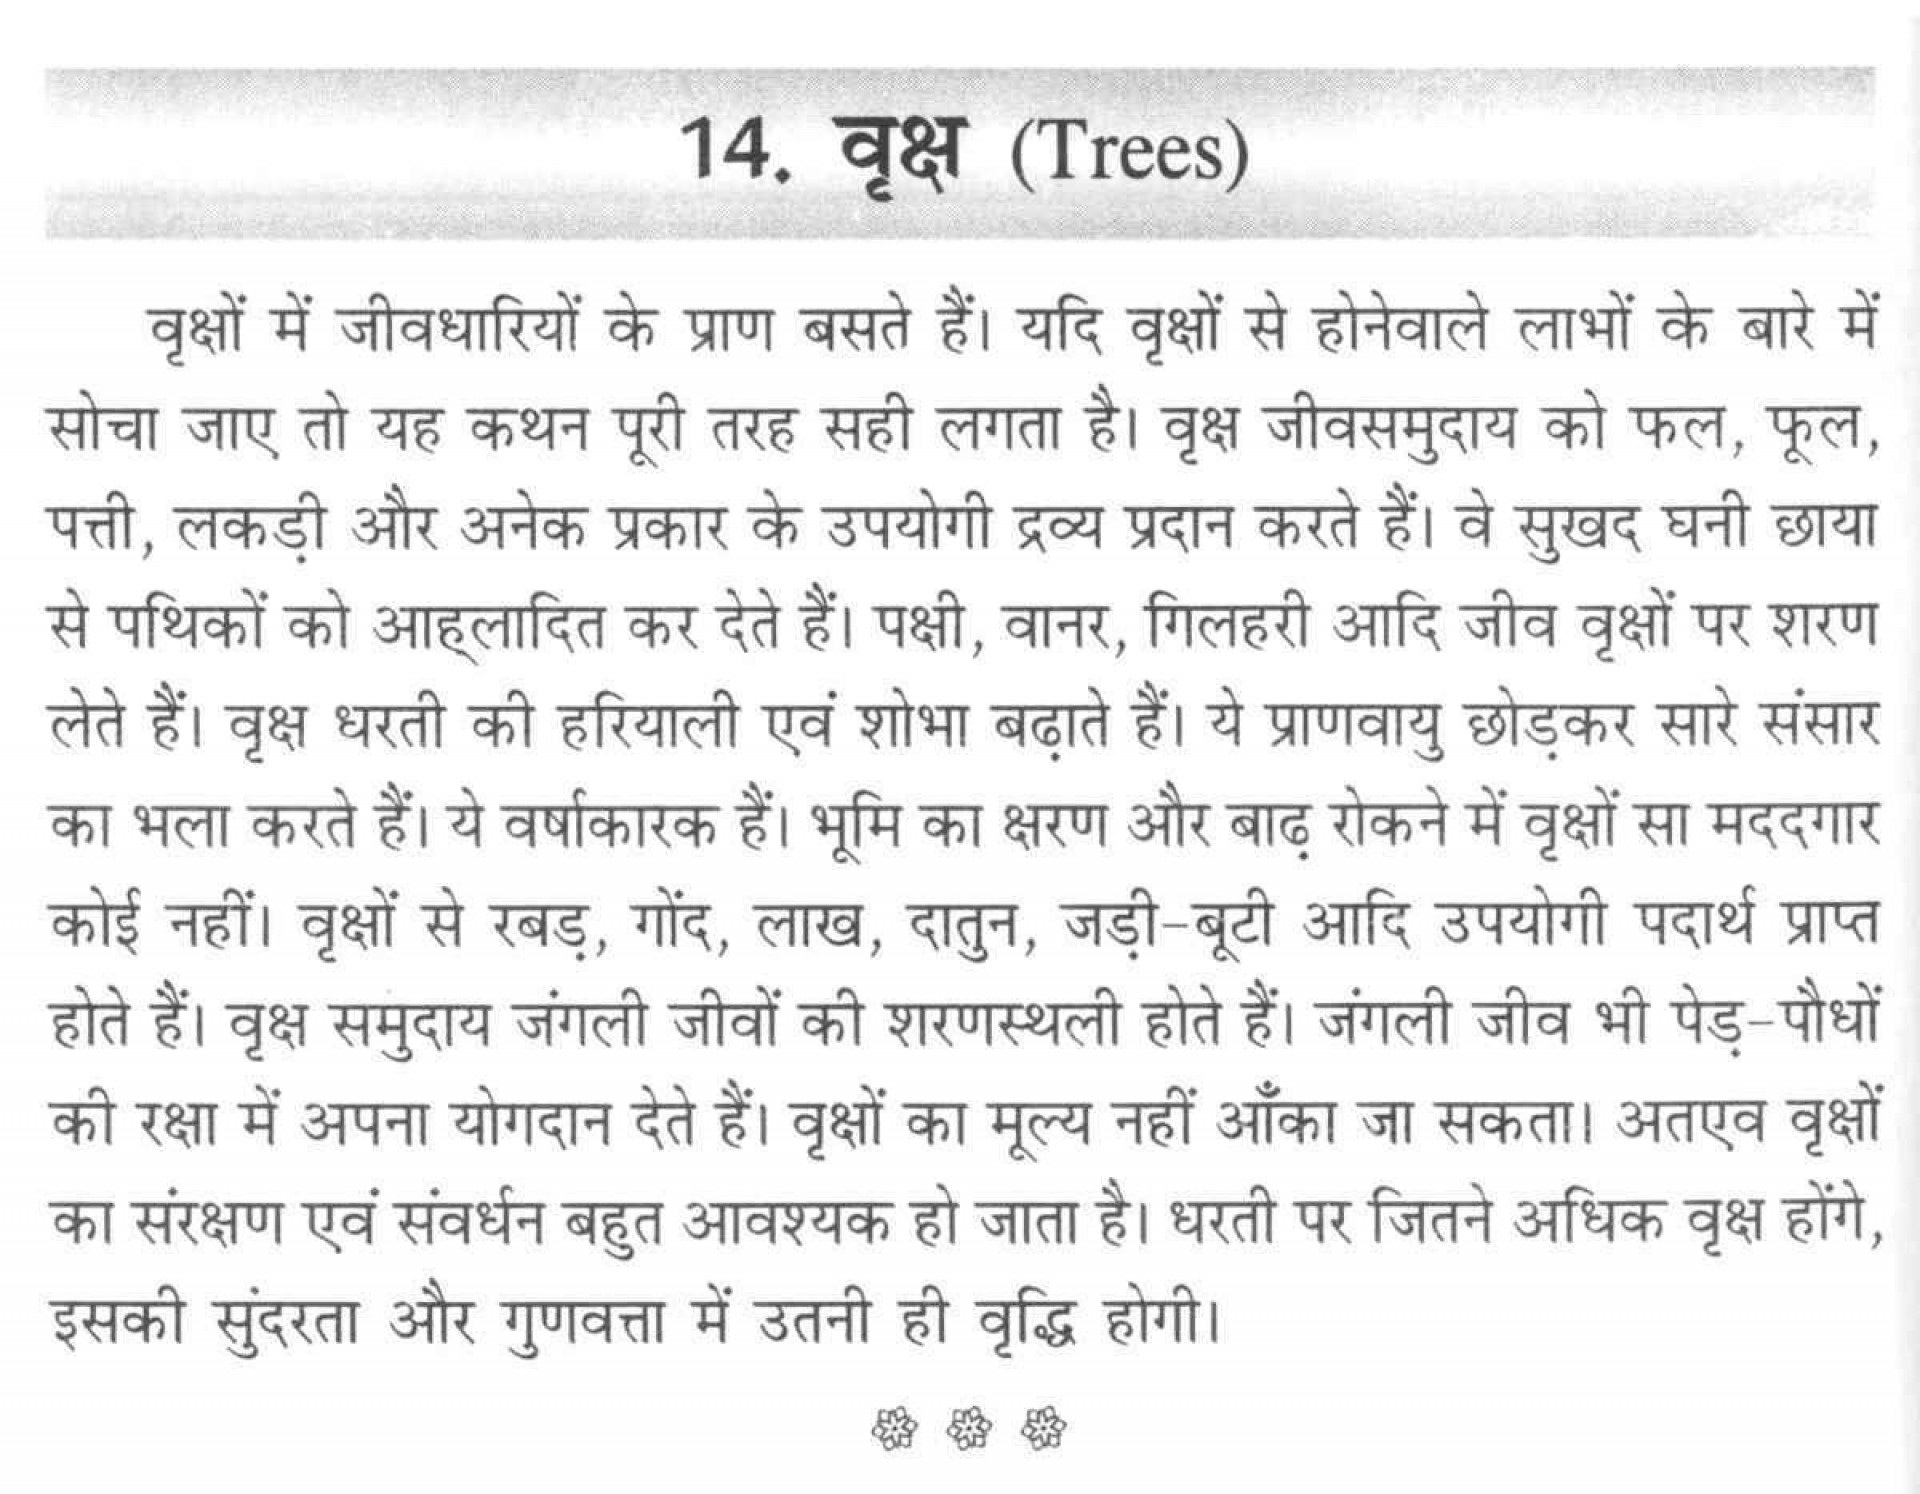 008 Essay Example On Swadesh Prem In Hindi Wonderful Pdf With Headings Desh 1920